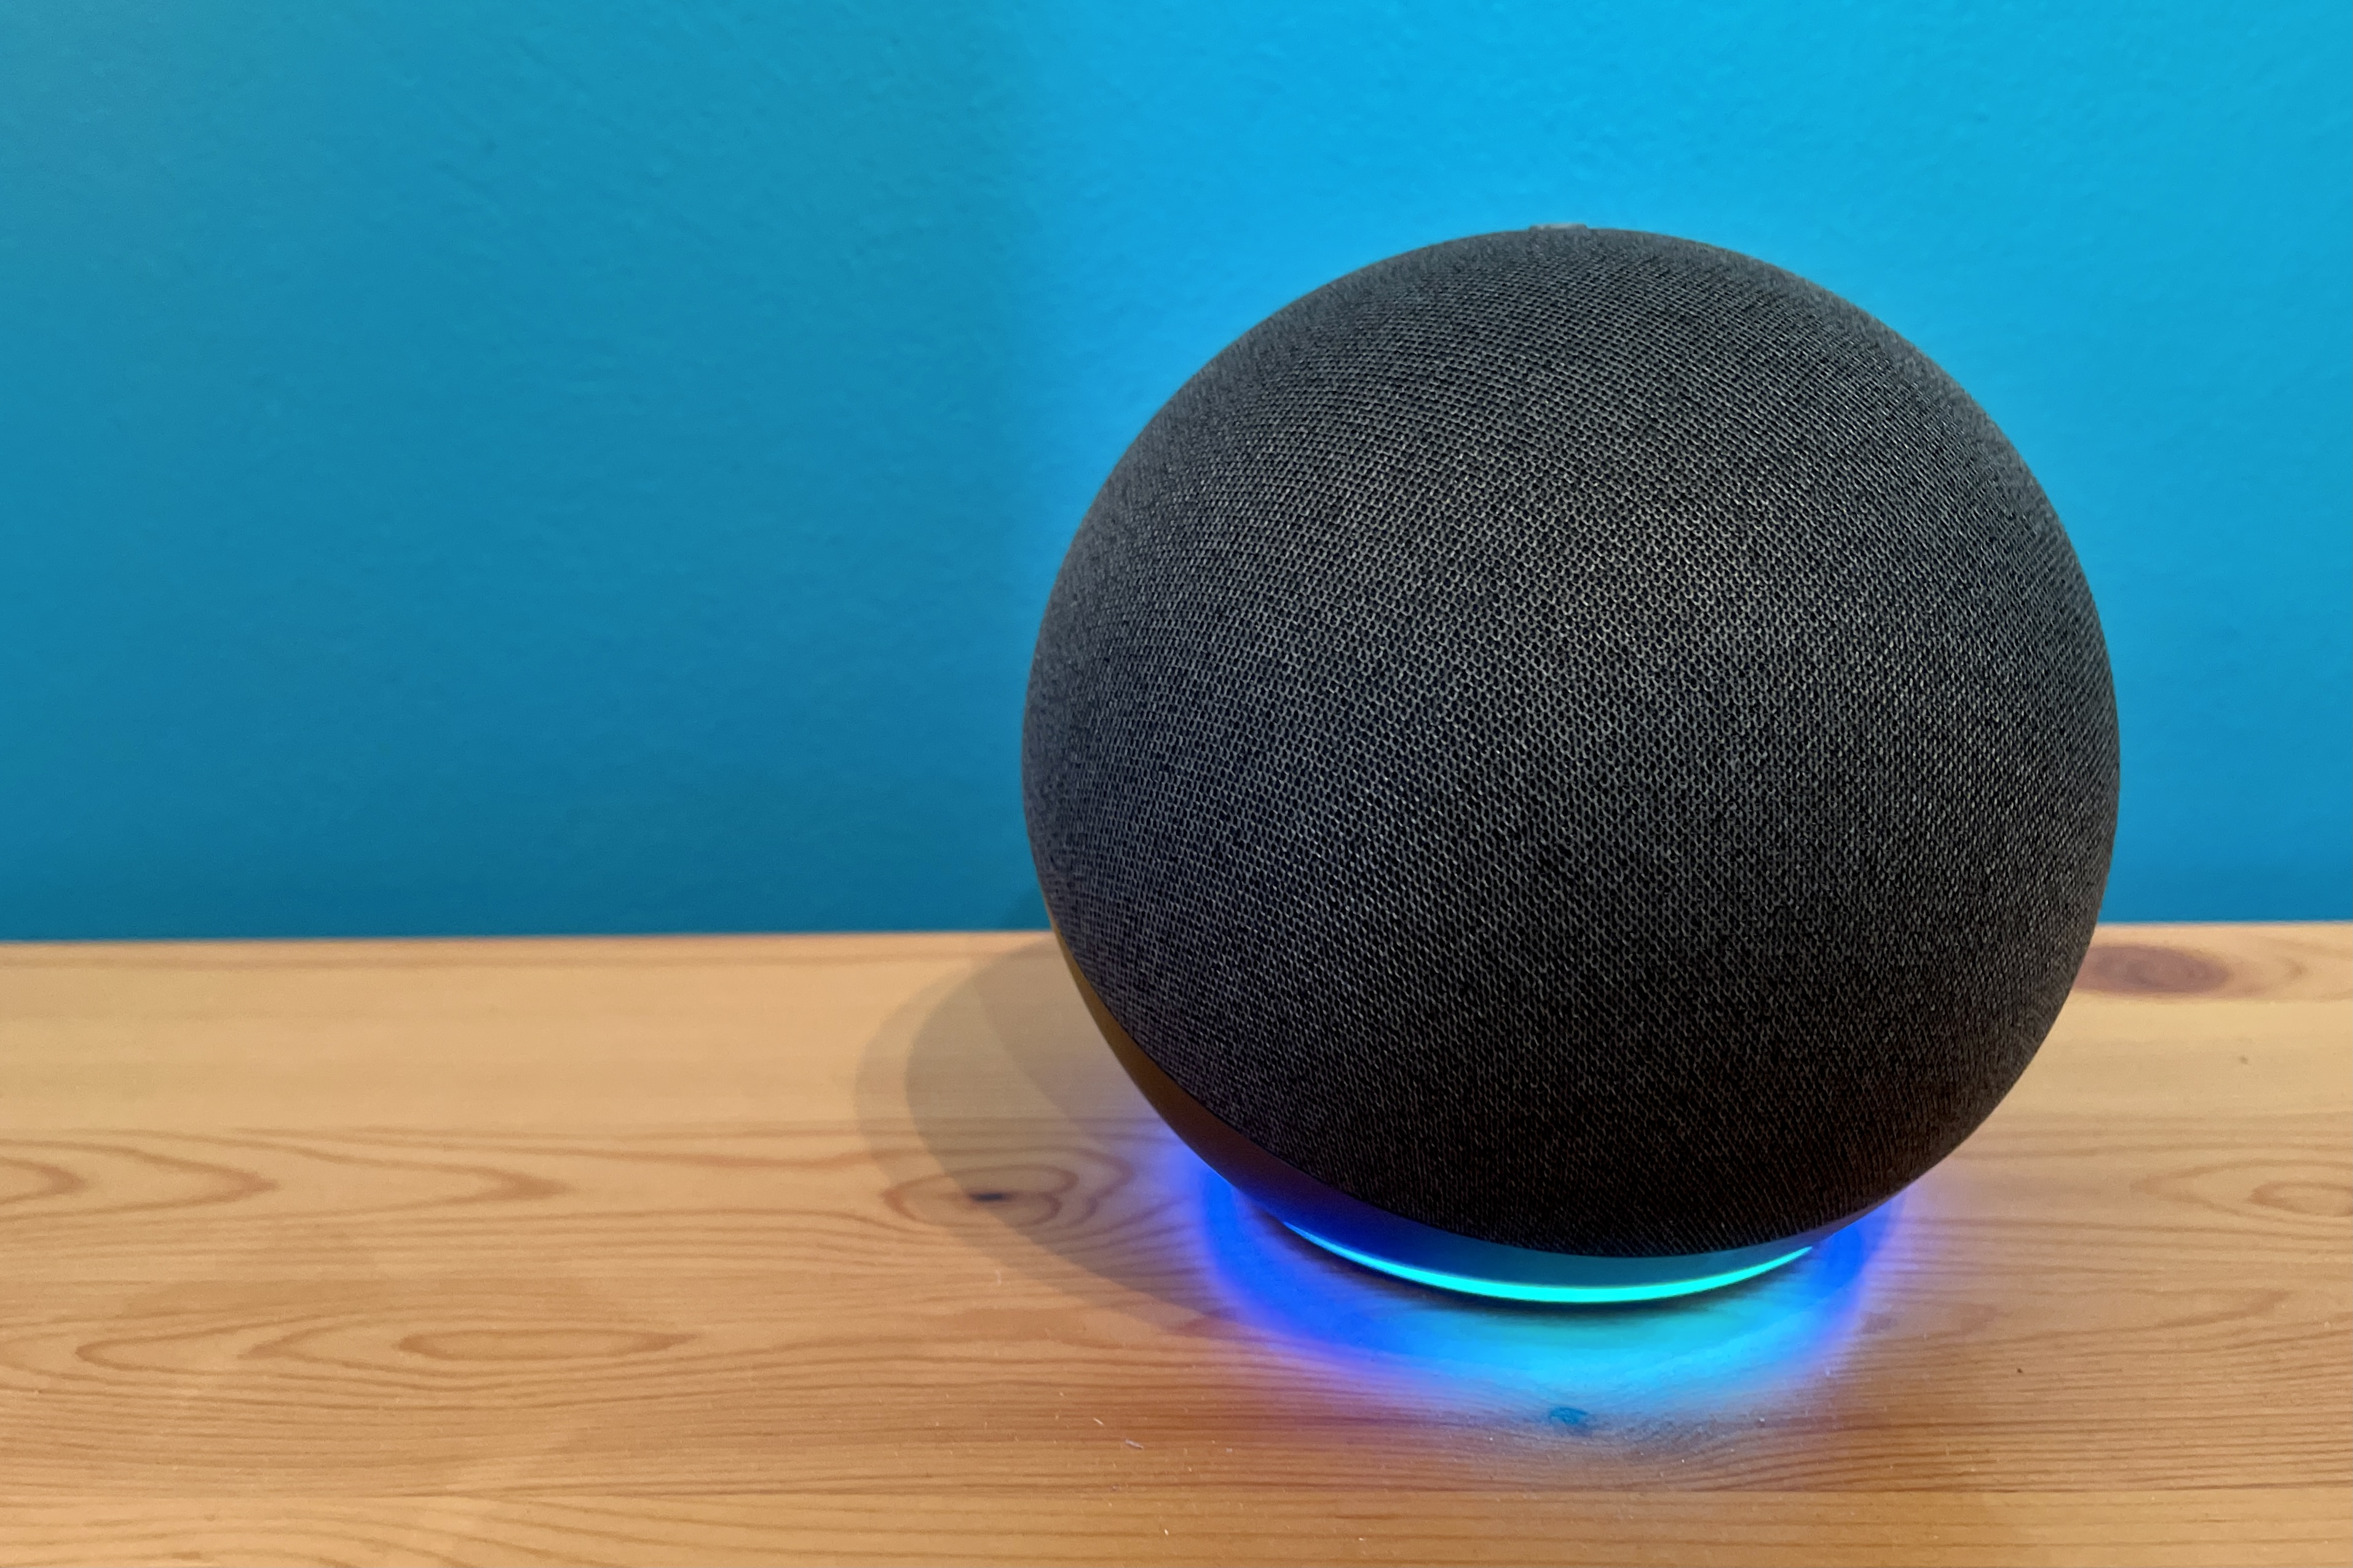 Amazon Echo on a wooden table against a blue wall